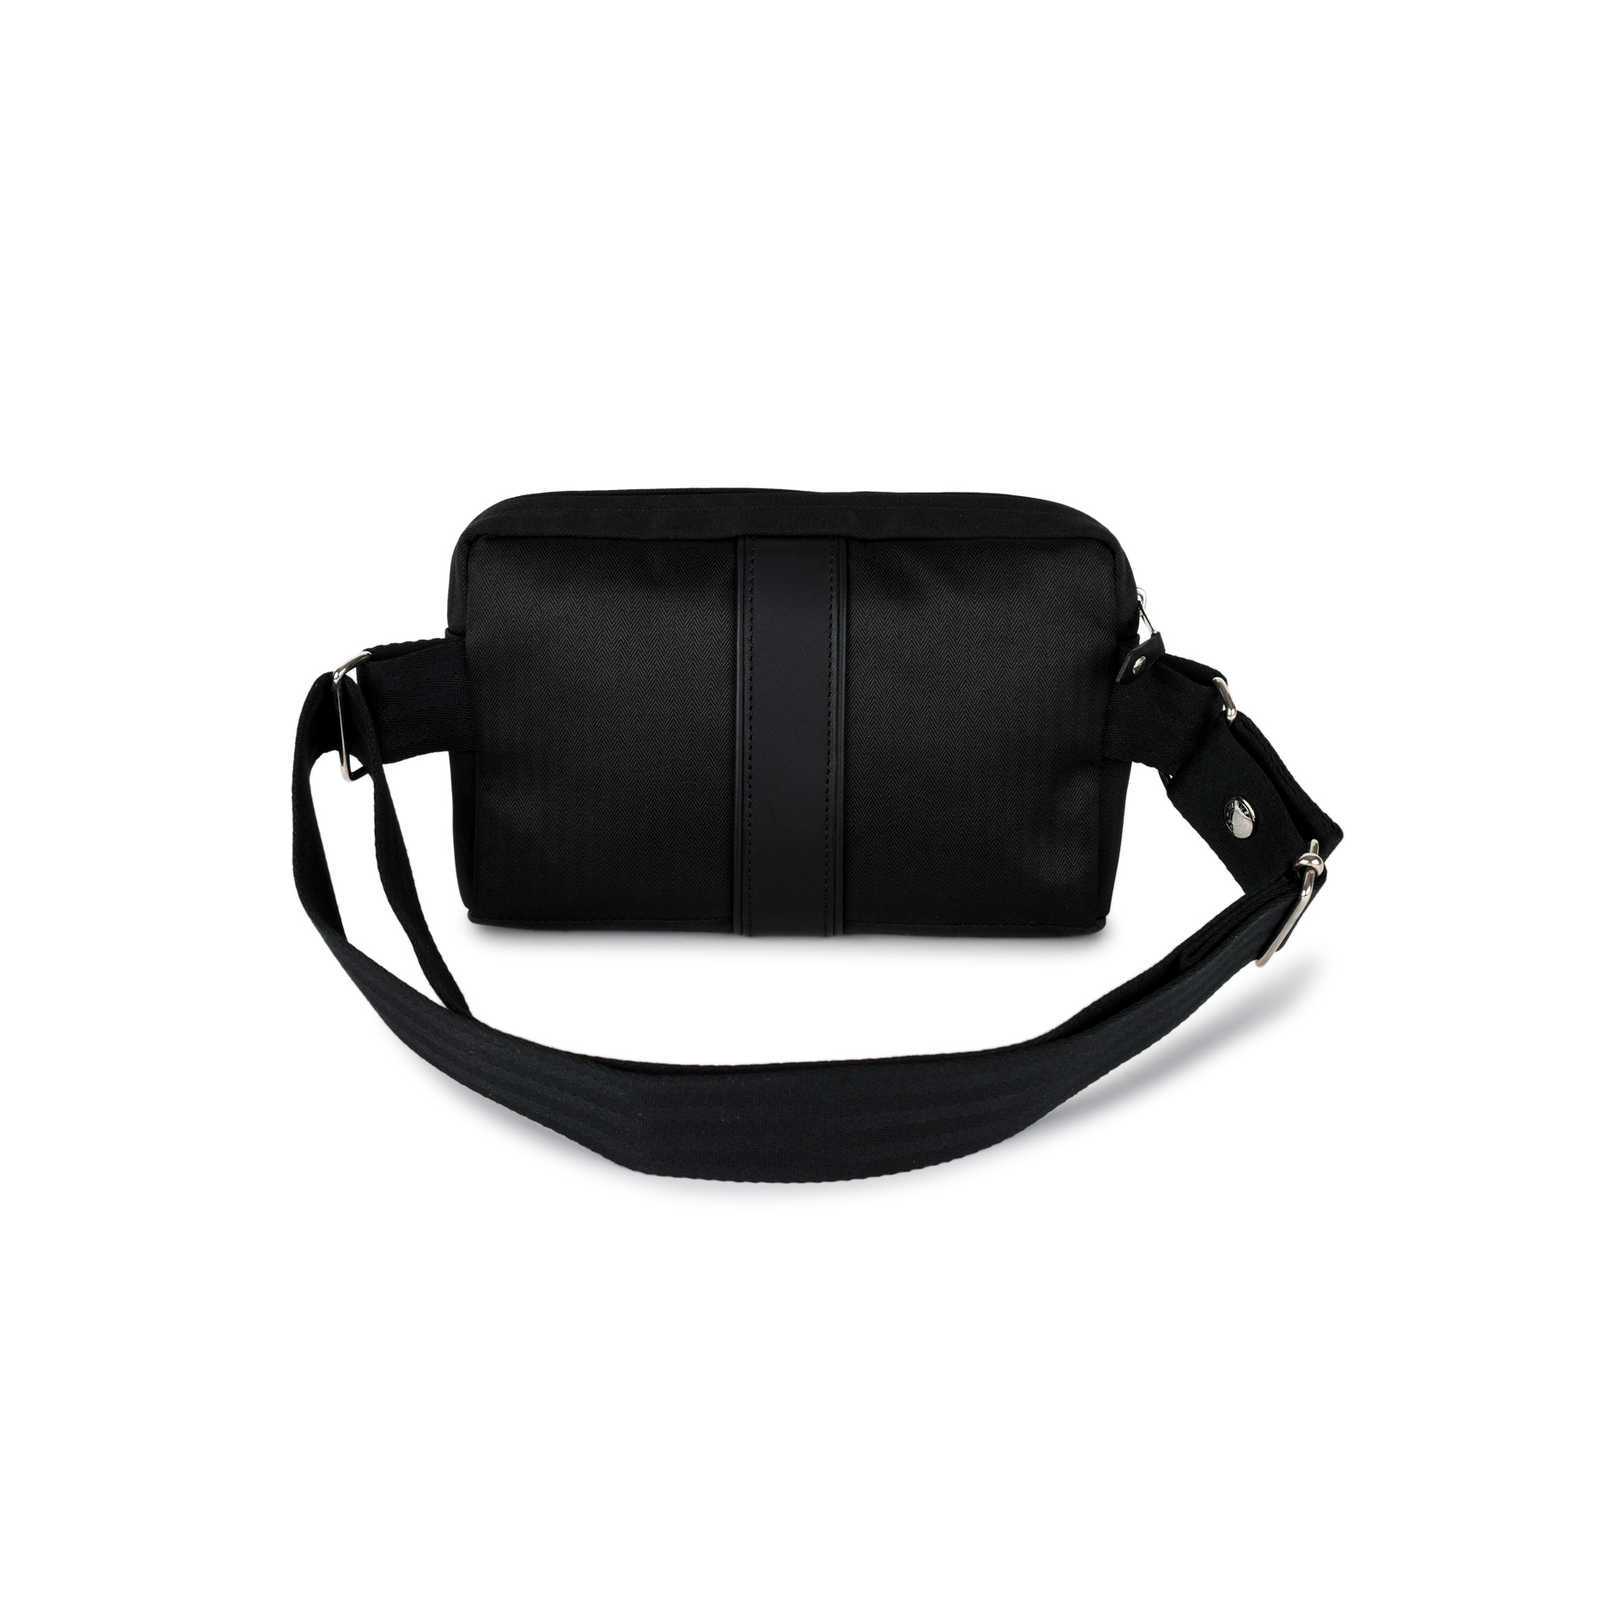 ... Authentic Pre Owned Hermès Acapulco Ceinture Waist Bag (PSS-430-00022)  ... 8a903c81543